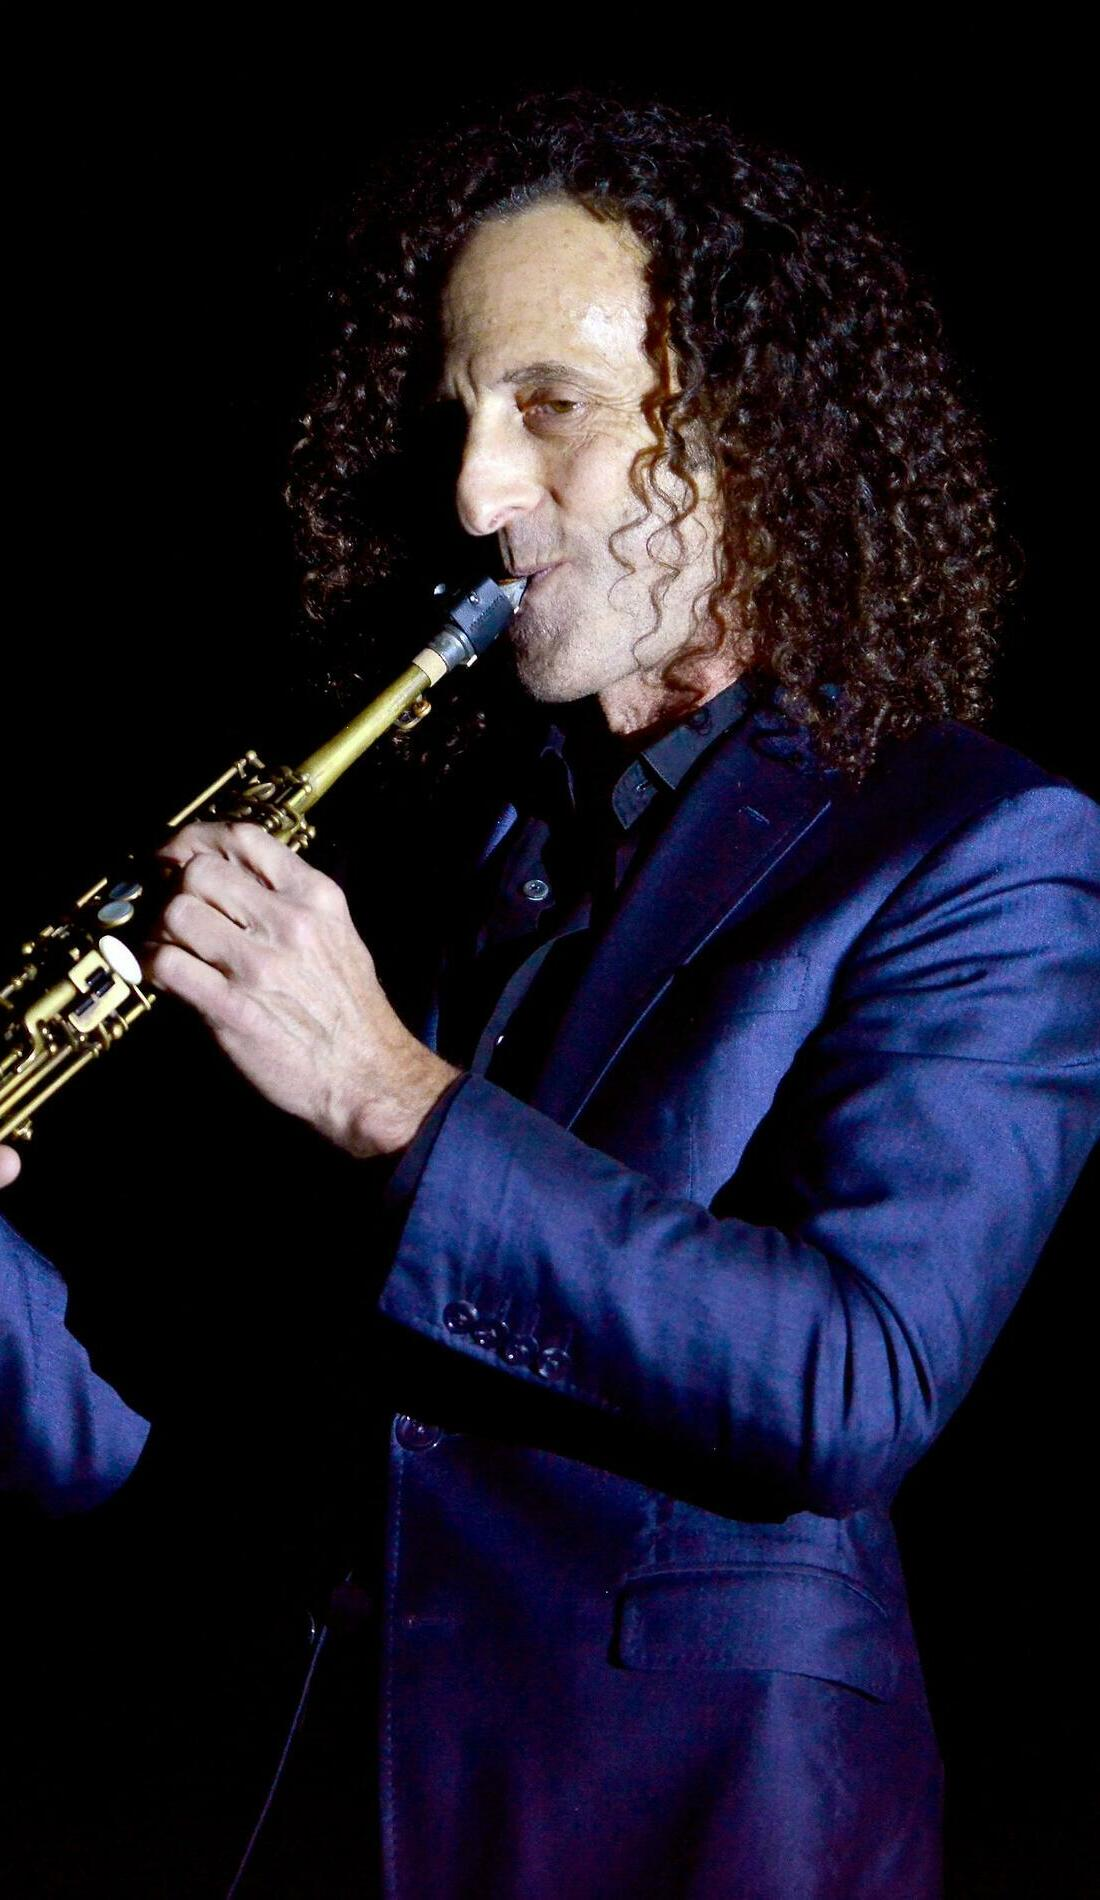 A Kenny G live event